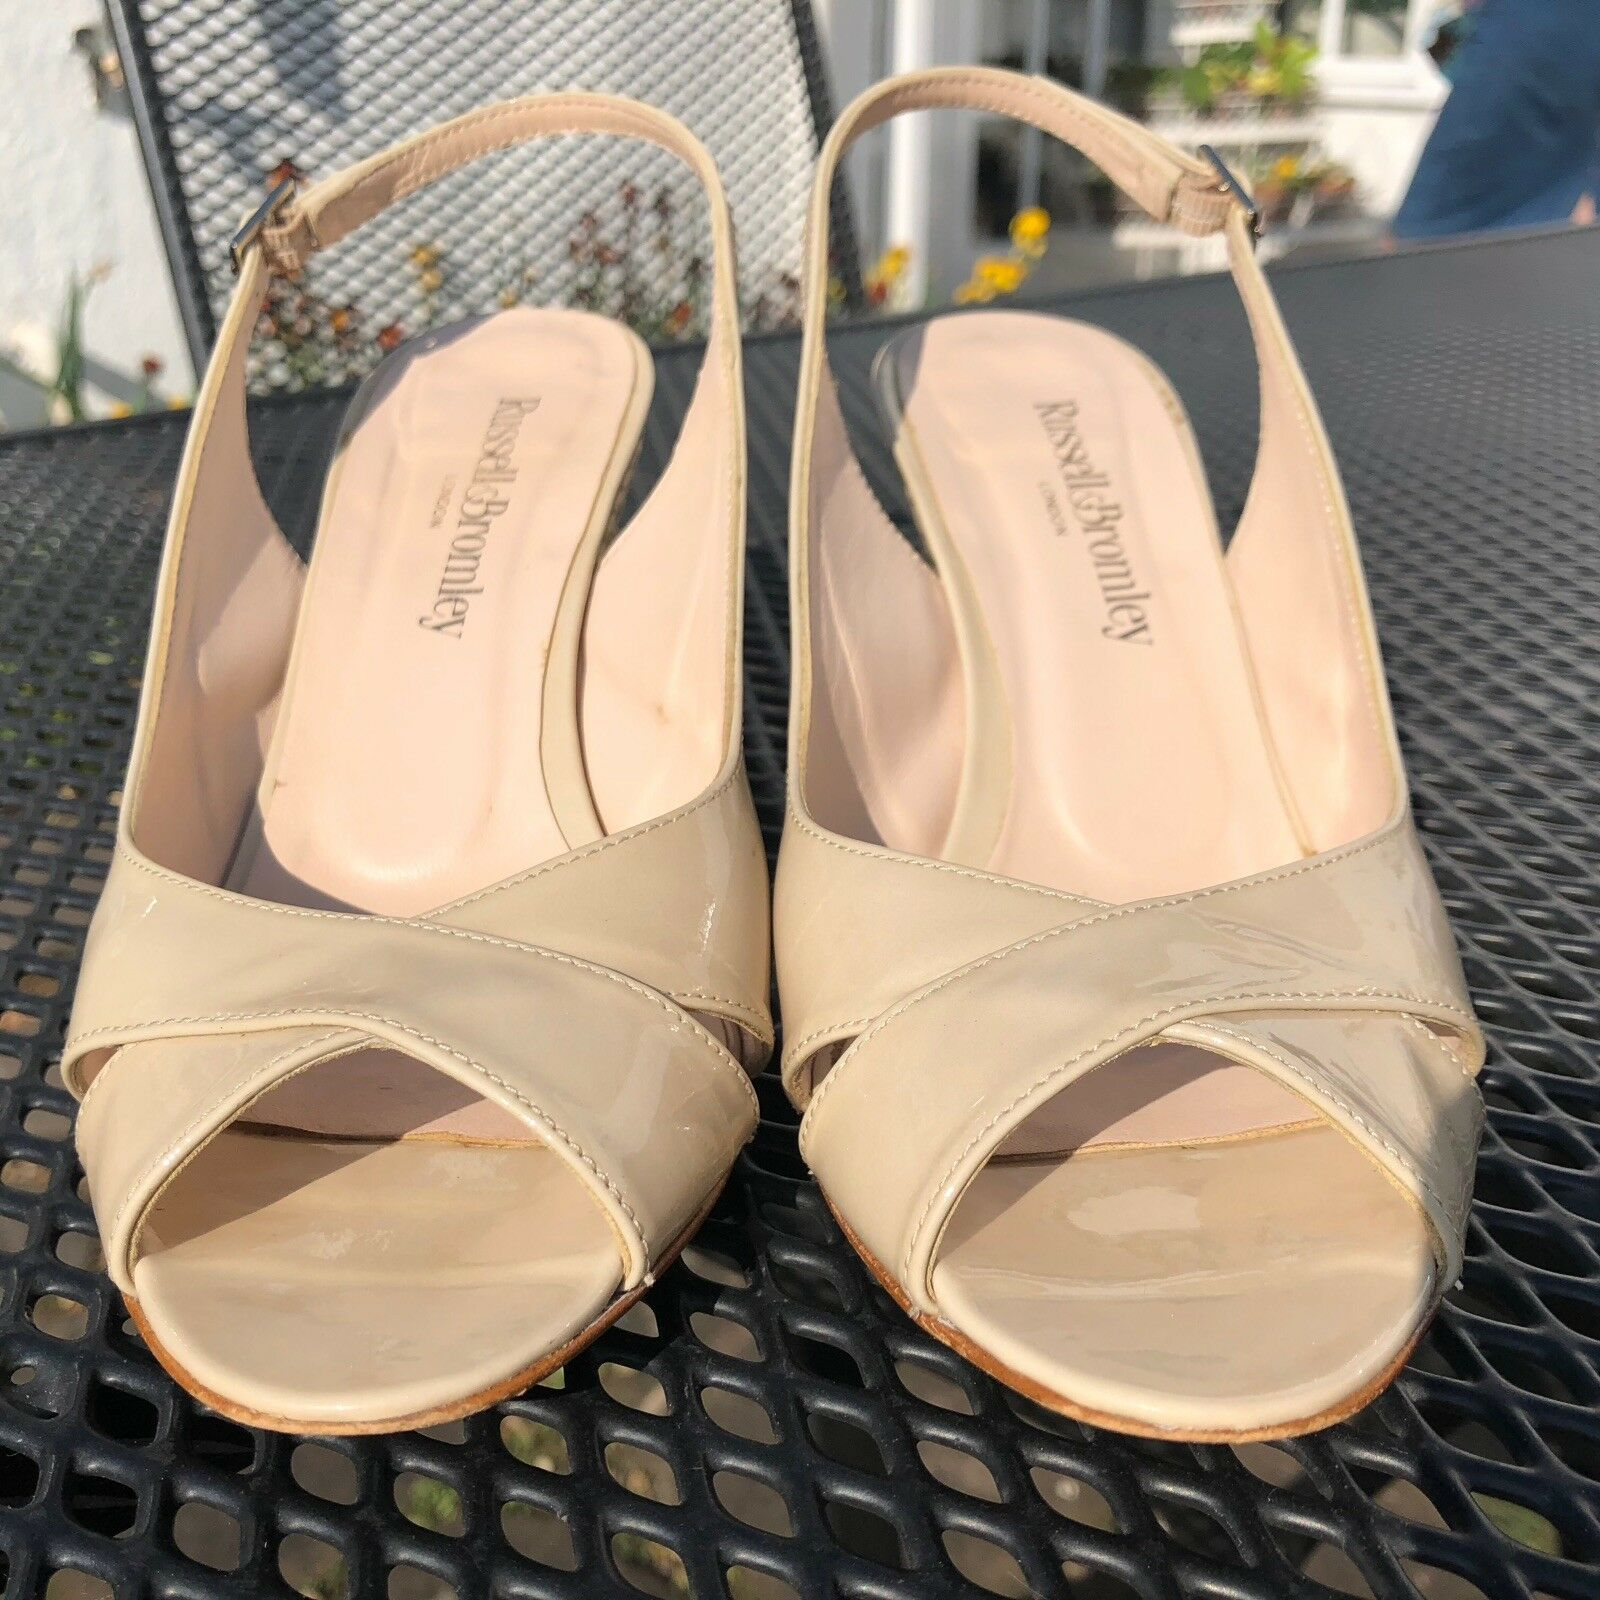 Russell & Bromley Nude Patent Sandales Leder Sandales Patent 494a12